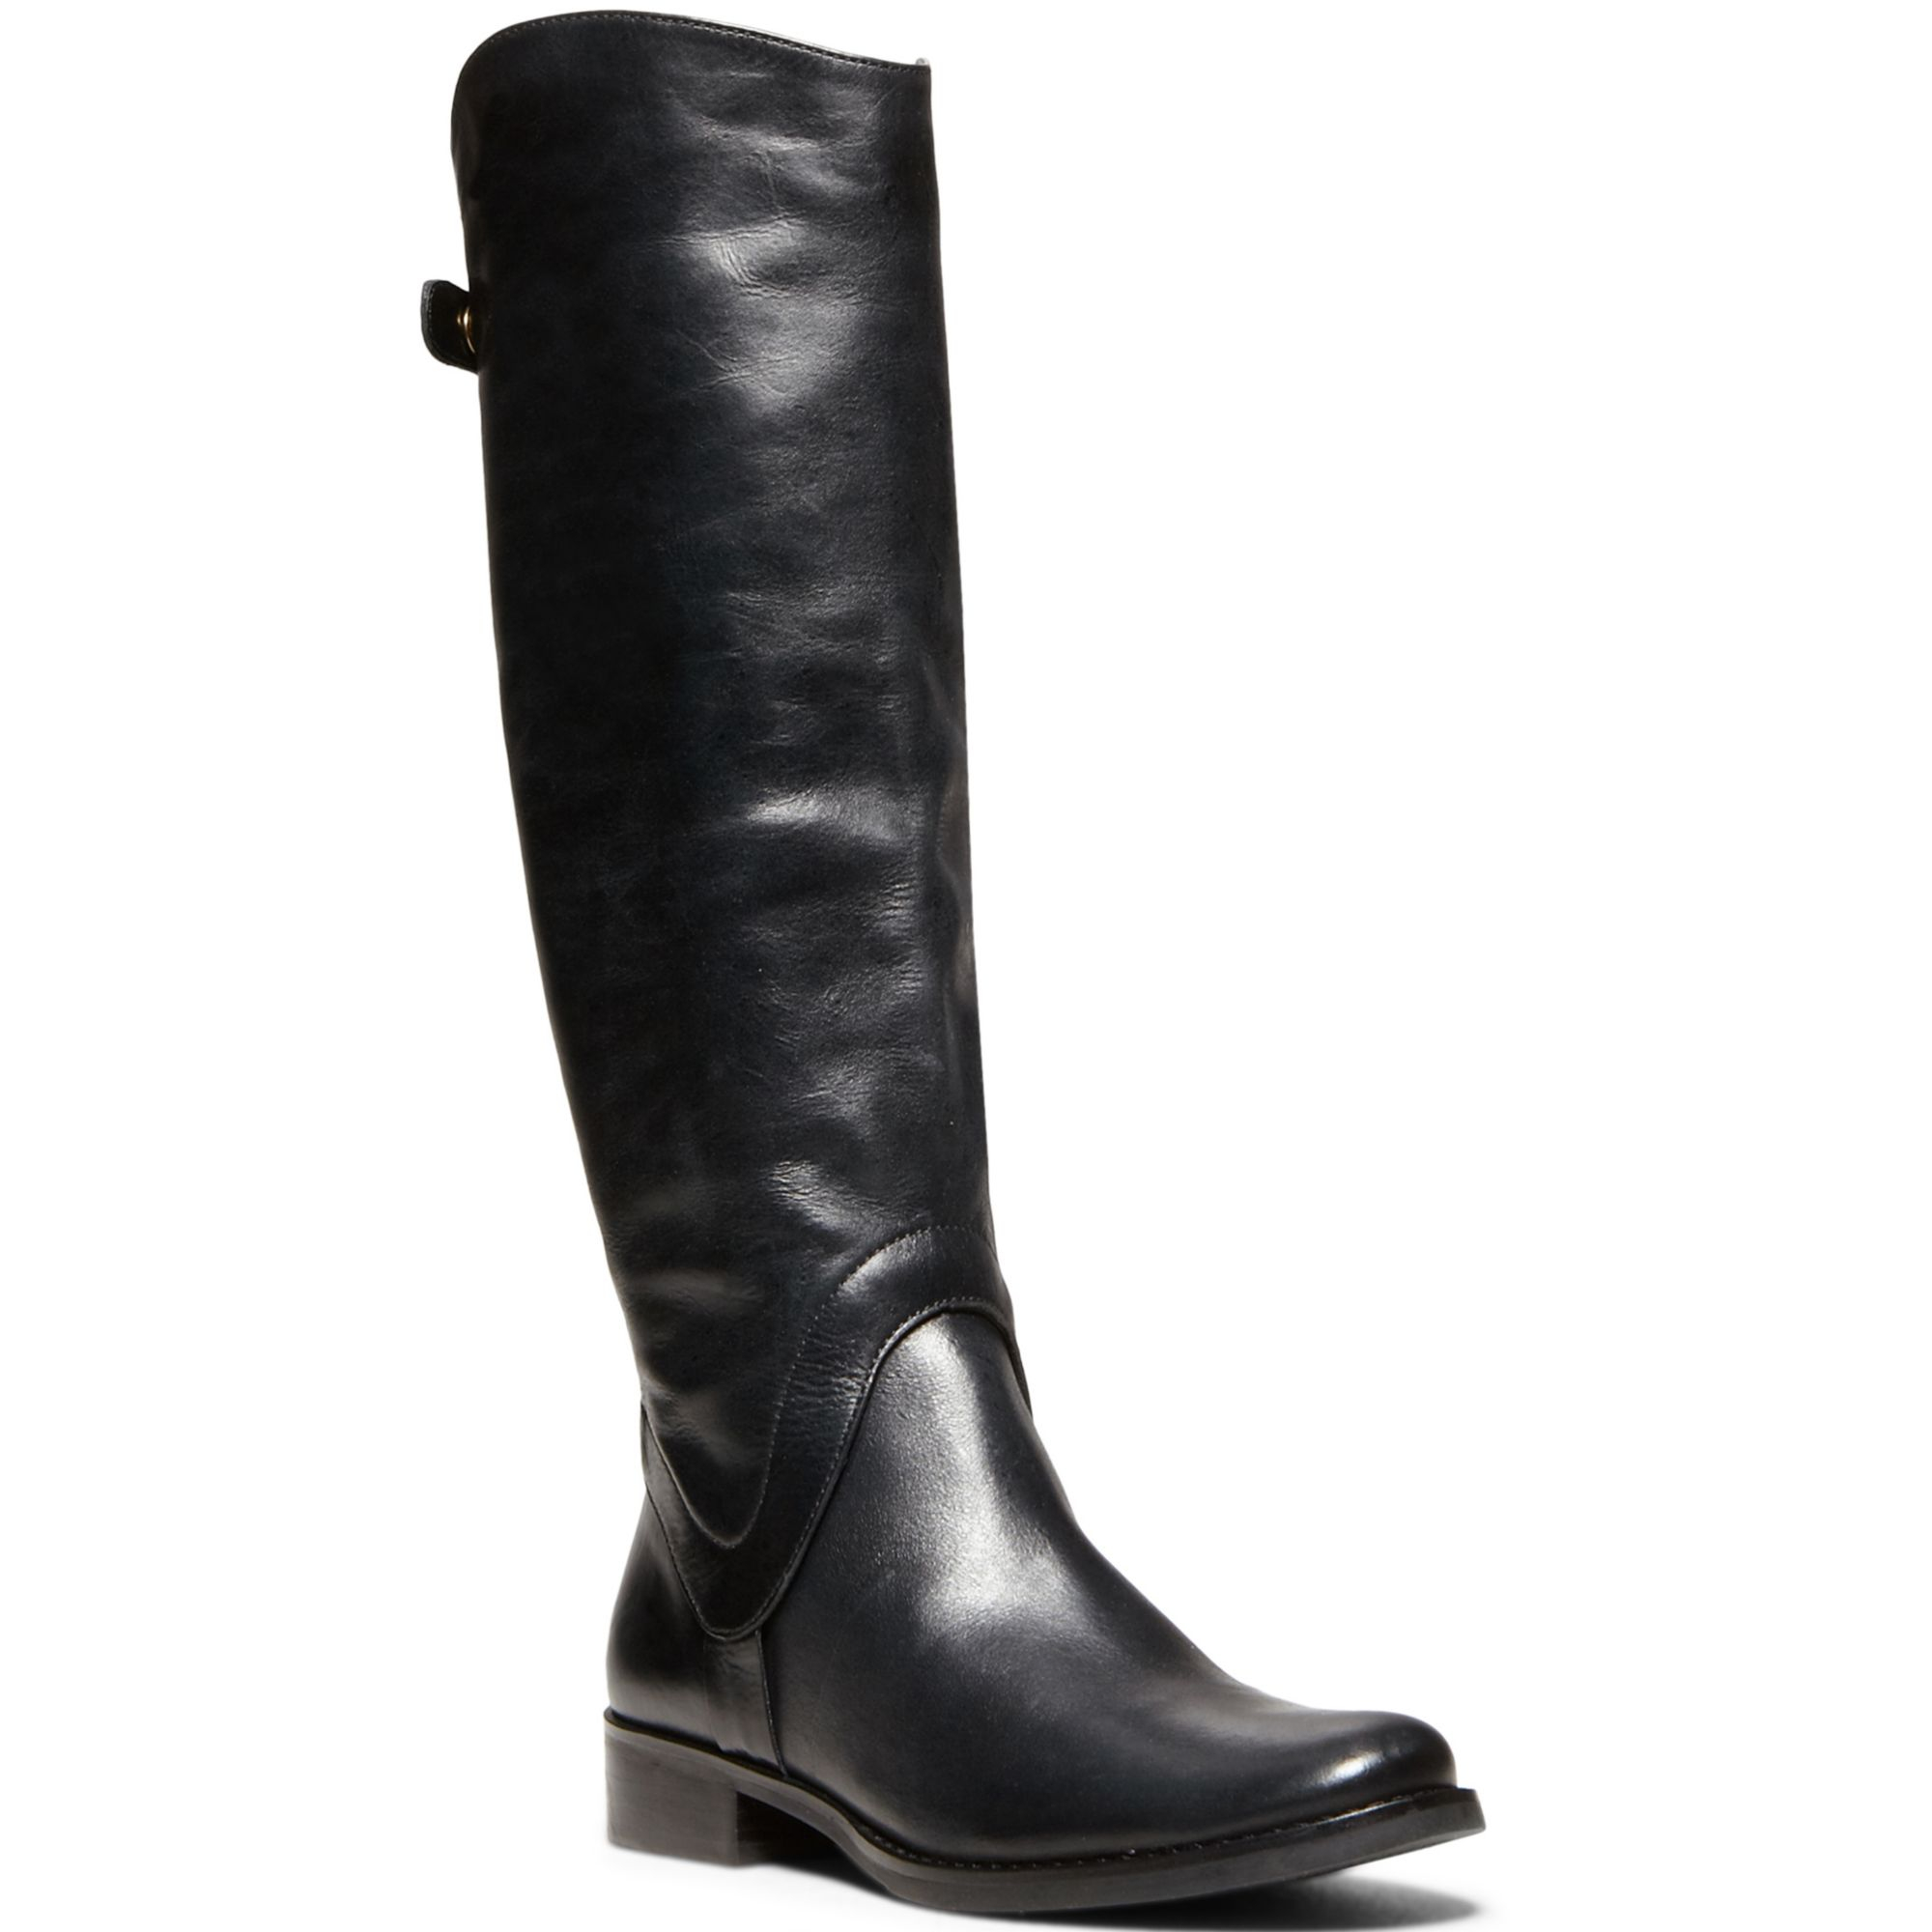 steven by steve madden sady wide calf tall riding boots in. Black Bedroom Furniture Sets. Home Design Ideas